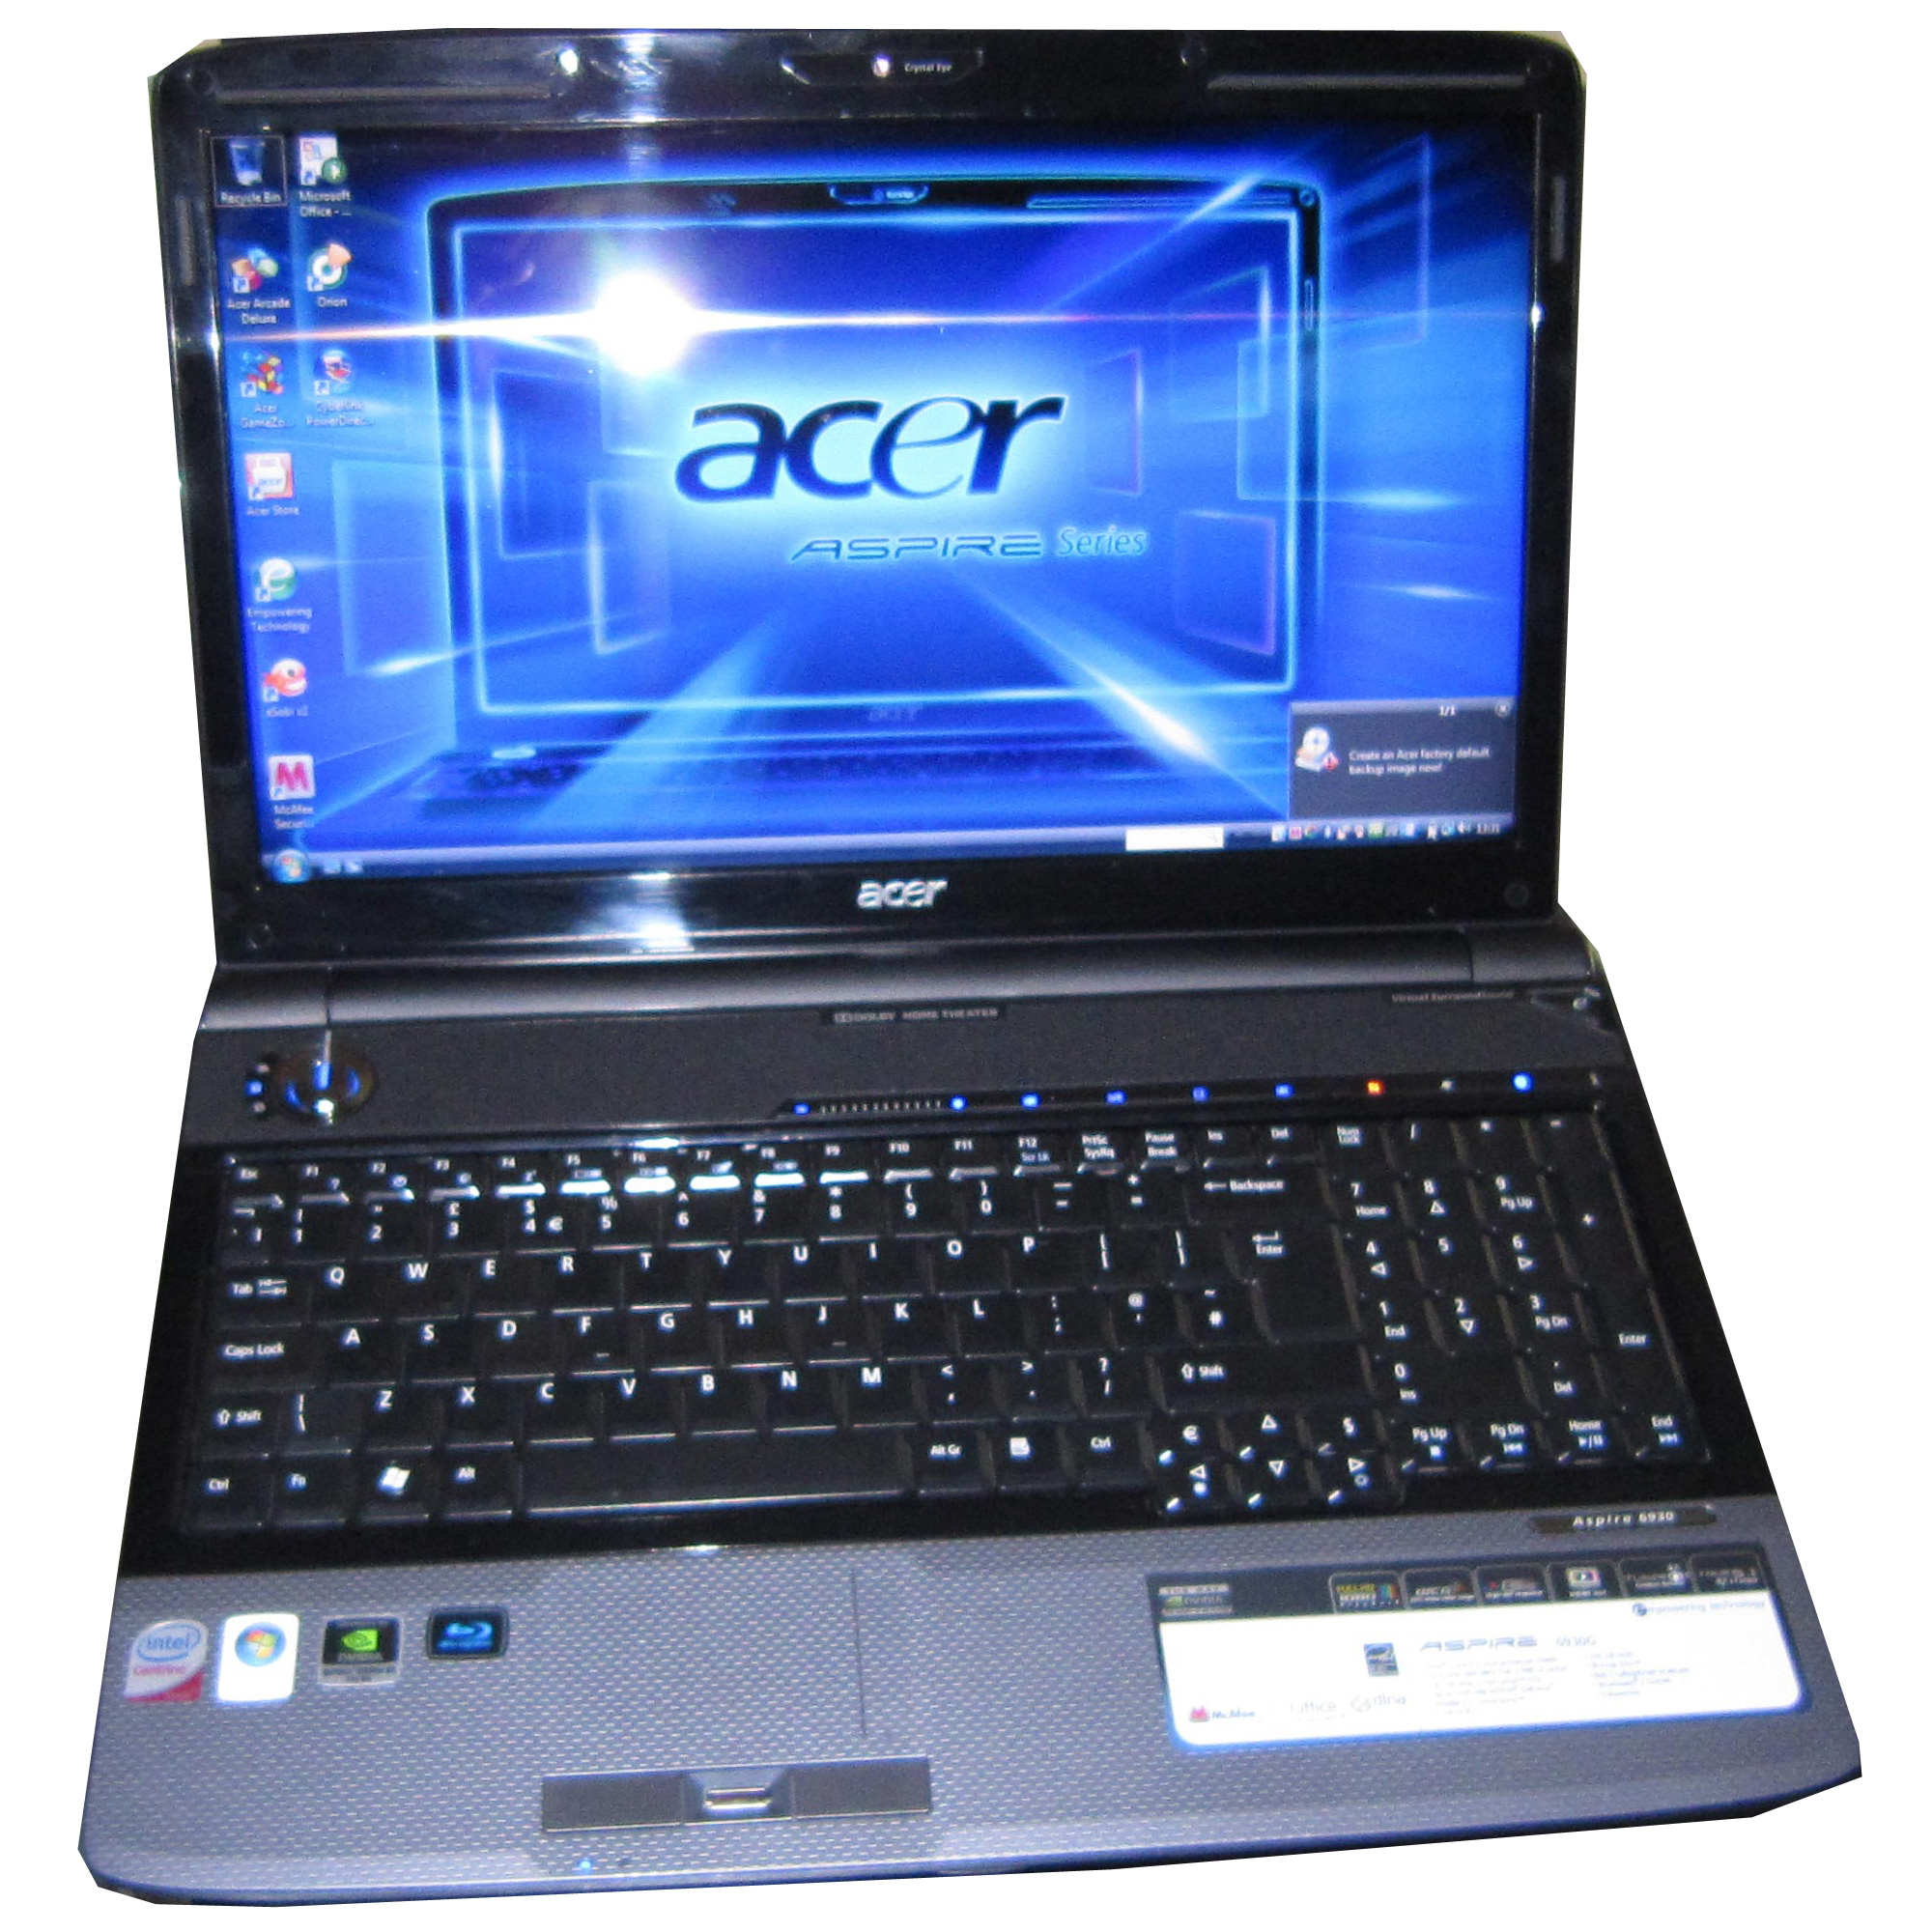 Driver needed for acer Aspire 5610z